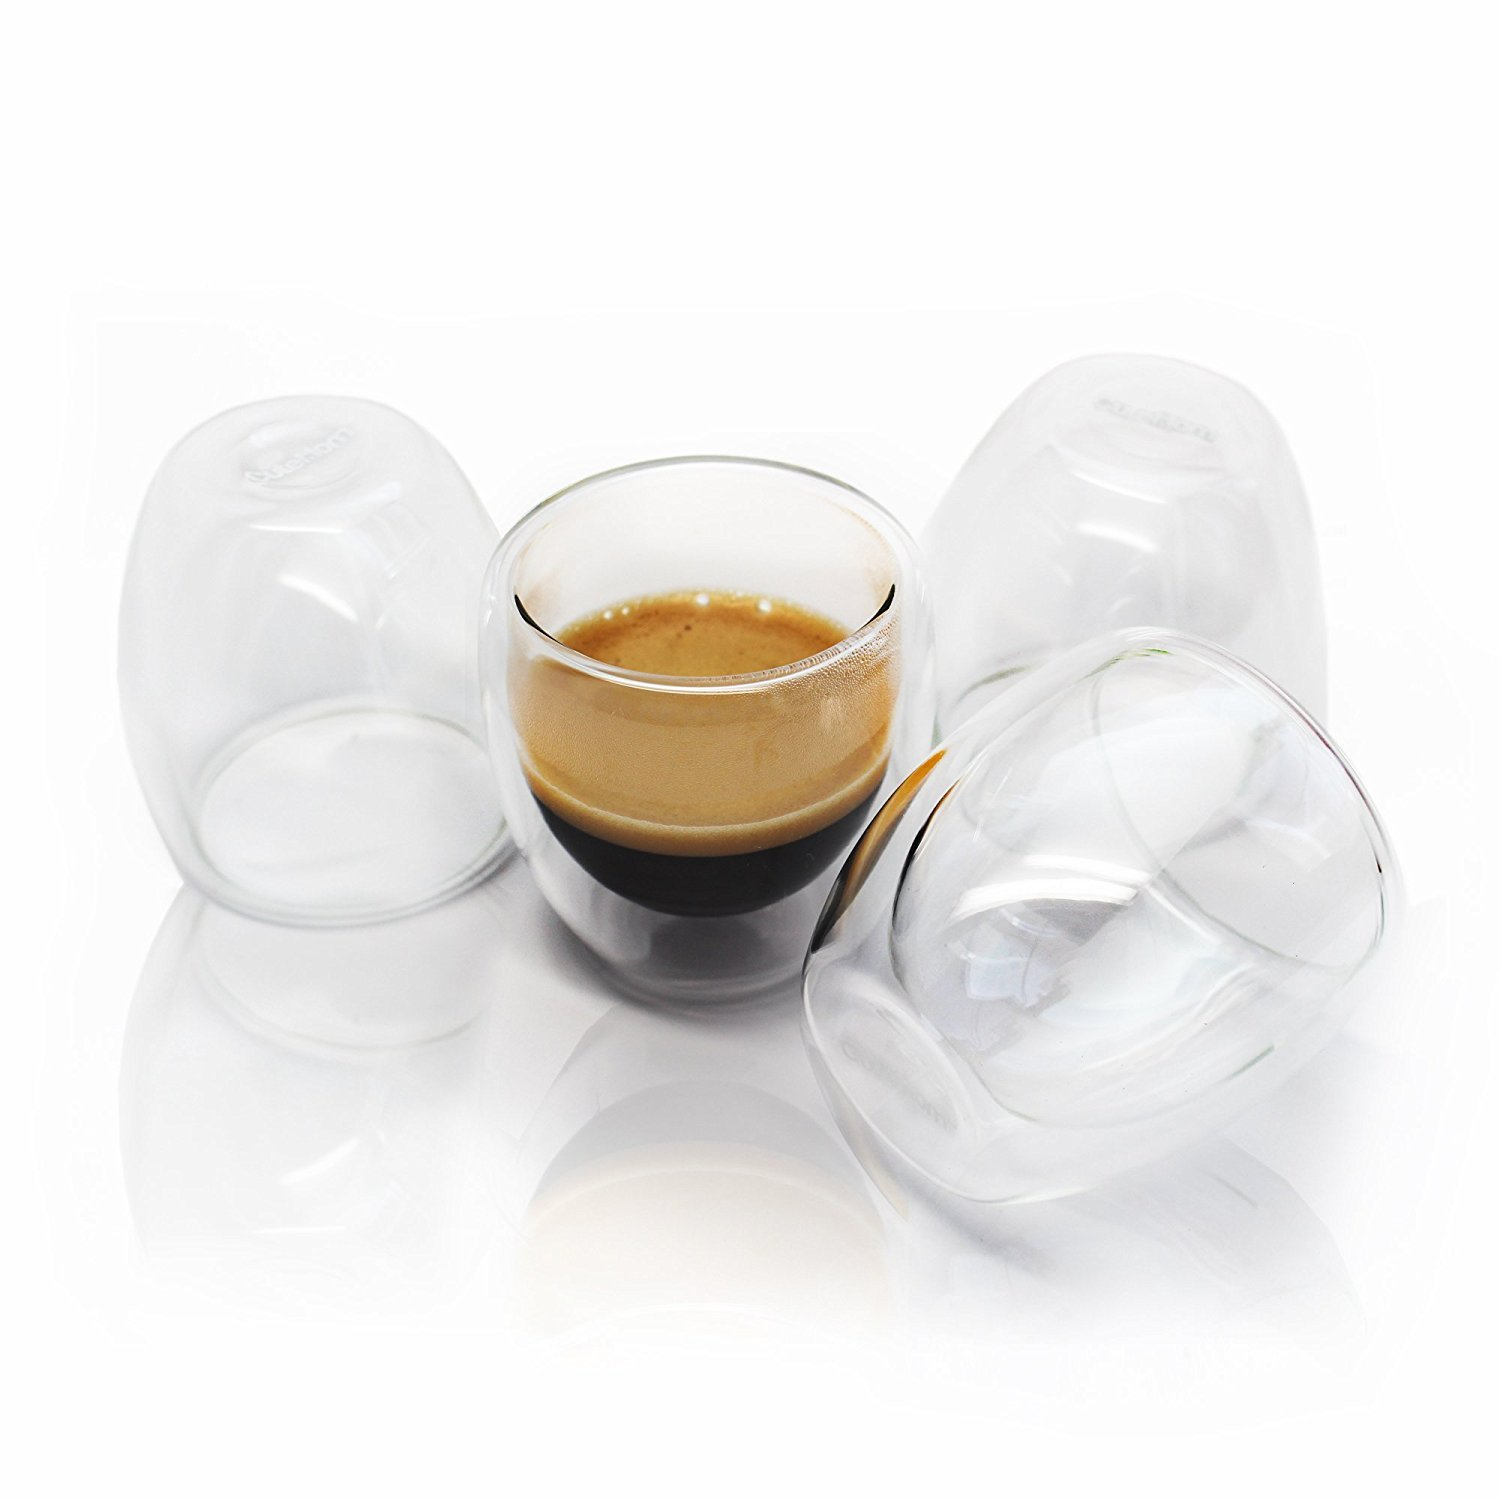 amazoncom espresso cups home  kitchen - cutehom espresso coffee cups  set of  double wall shot glasses